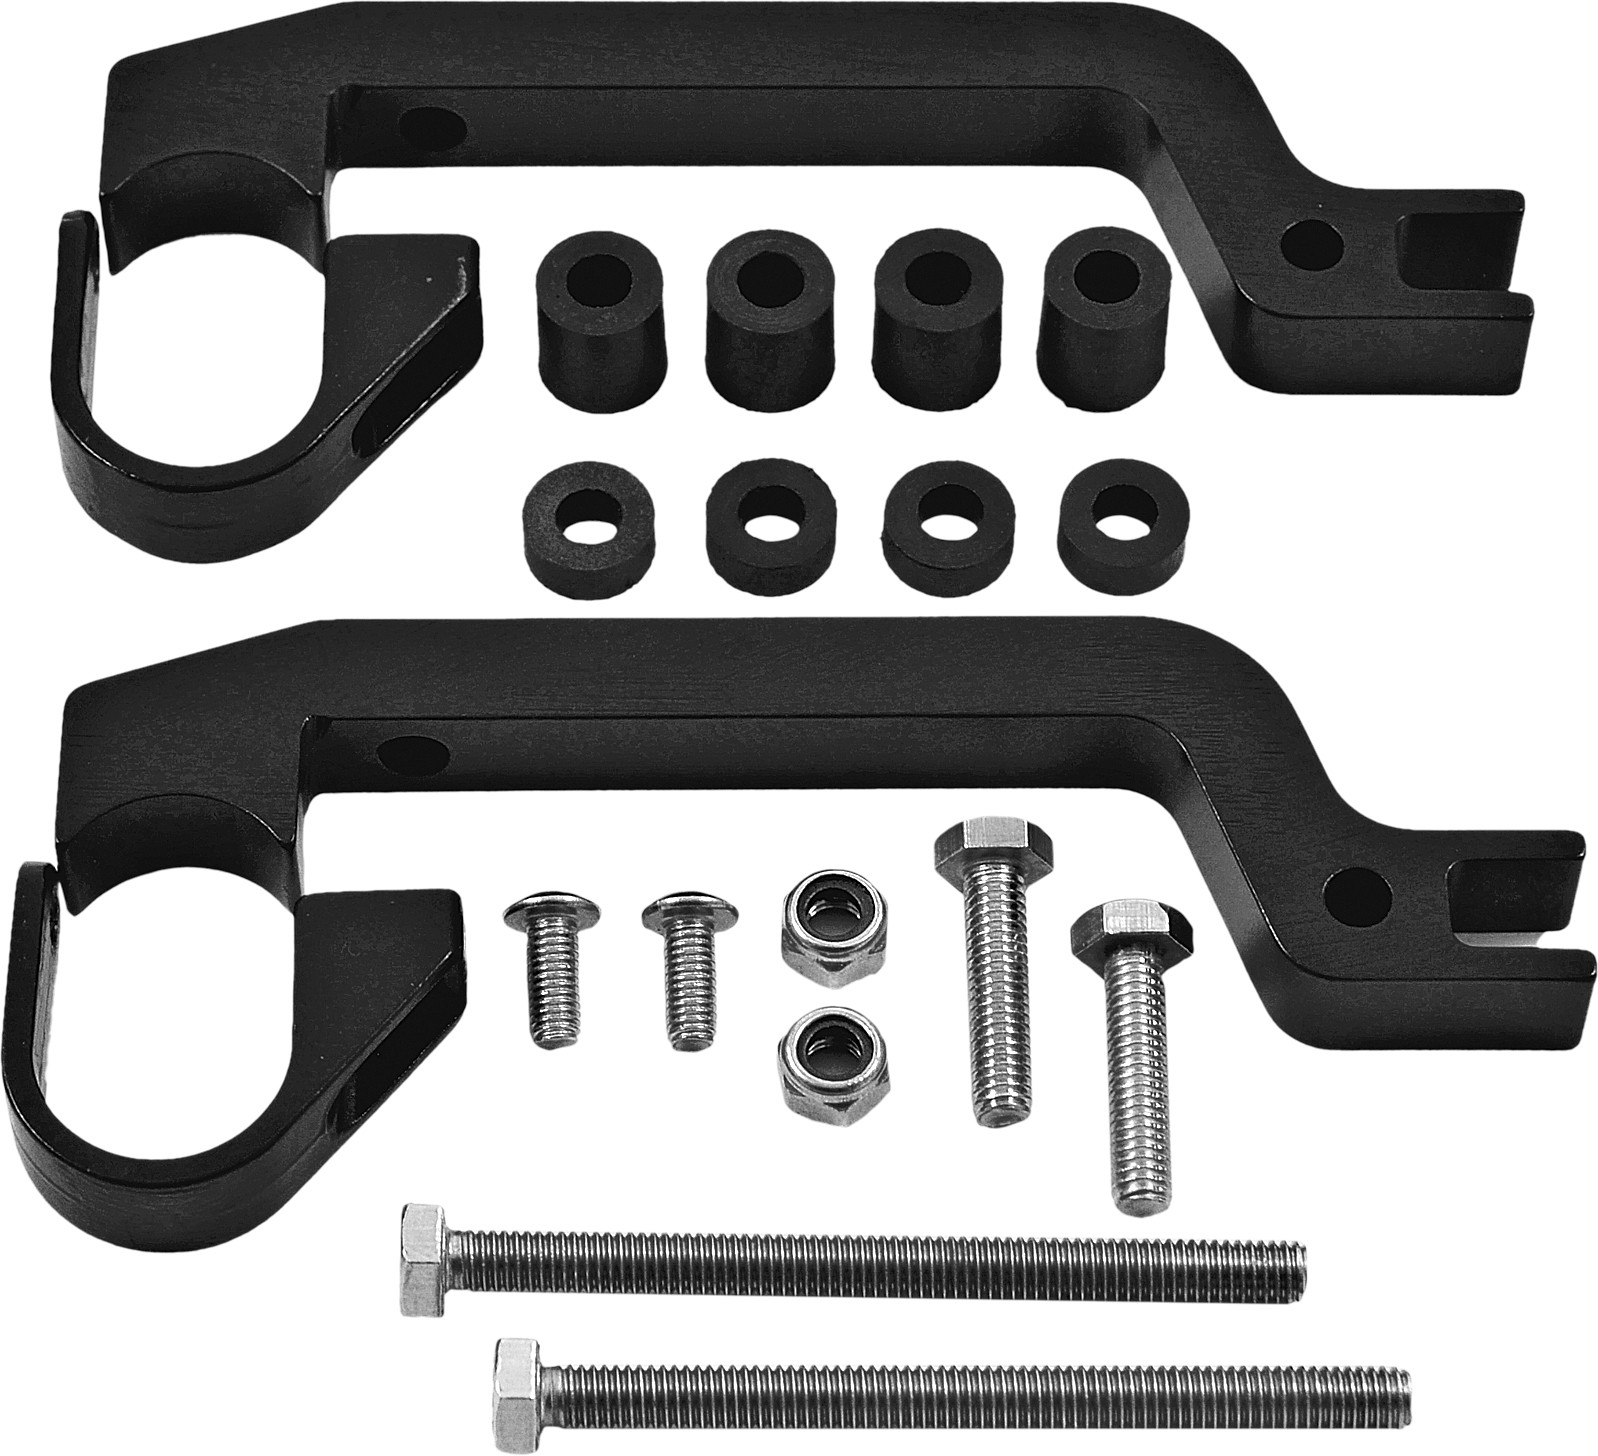 Sentinal Handguard Atv/Mx Mount Kit